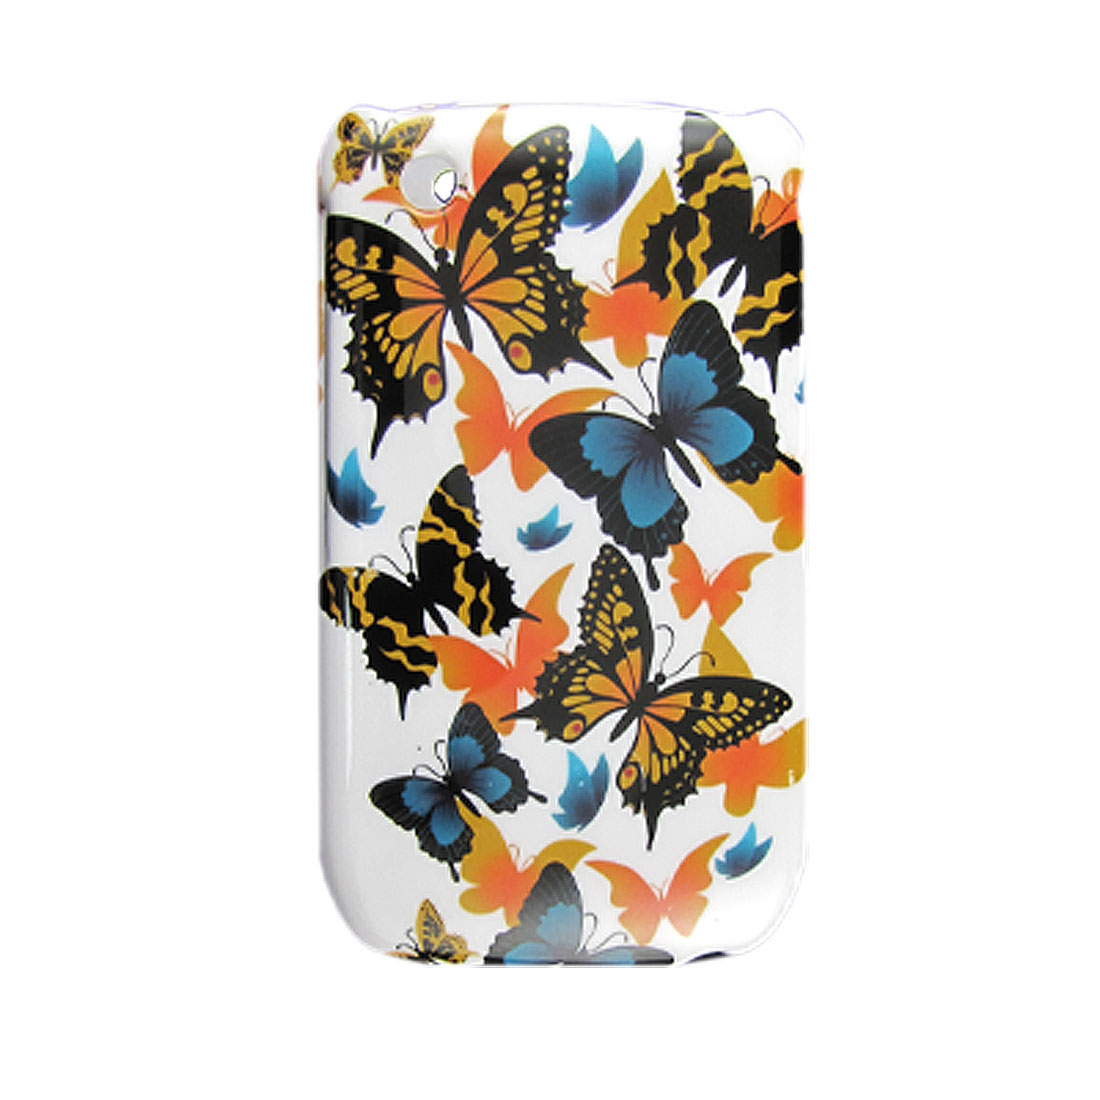 Hard Plastic Butterfly Patern Protect Case for Blackberry 8520